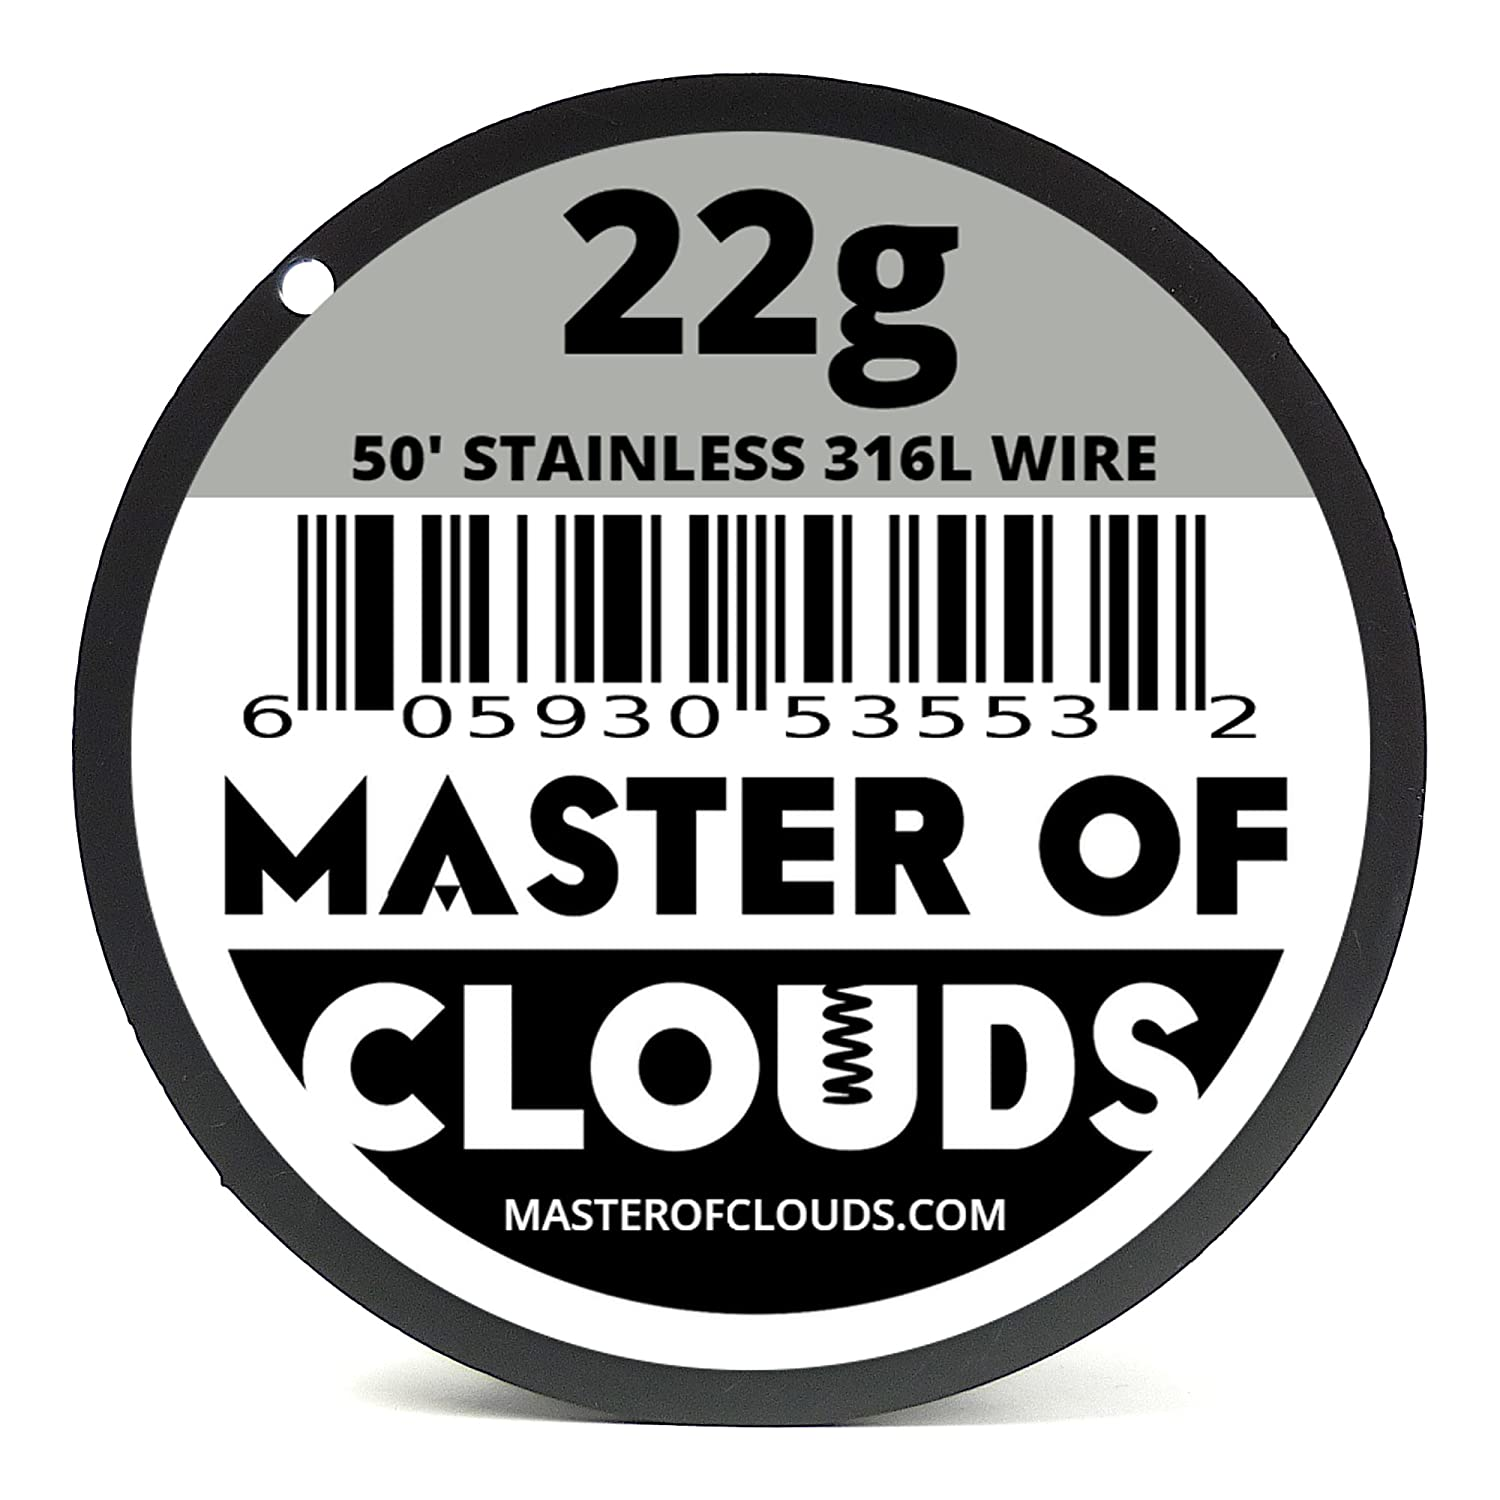 Mixed 550 Feet of SS 316L Wire 22, 24, 26, 28, 30, 32, 34, 36 Gauge ...